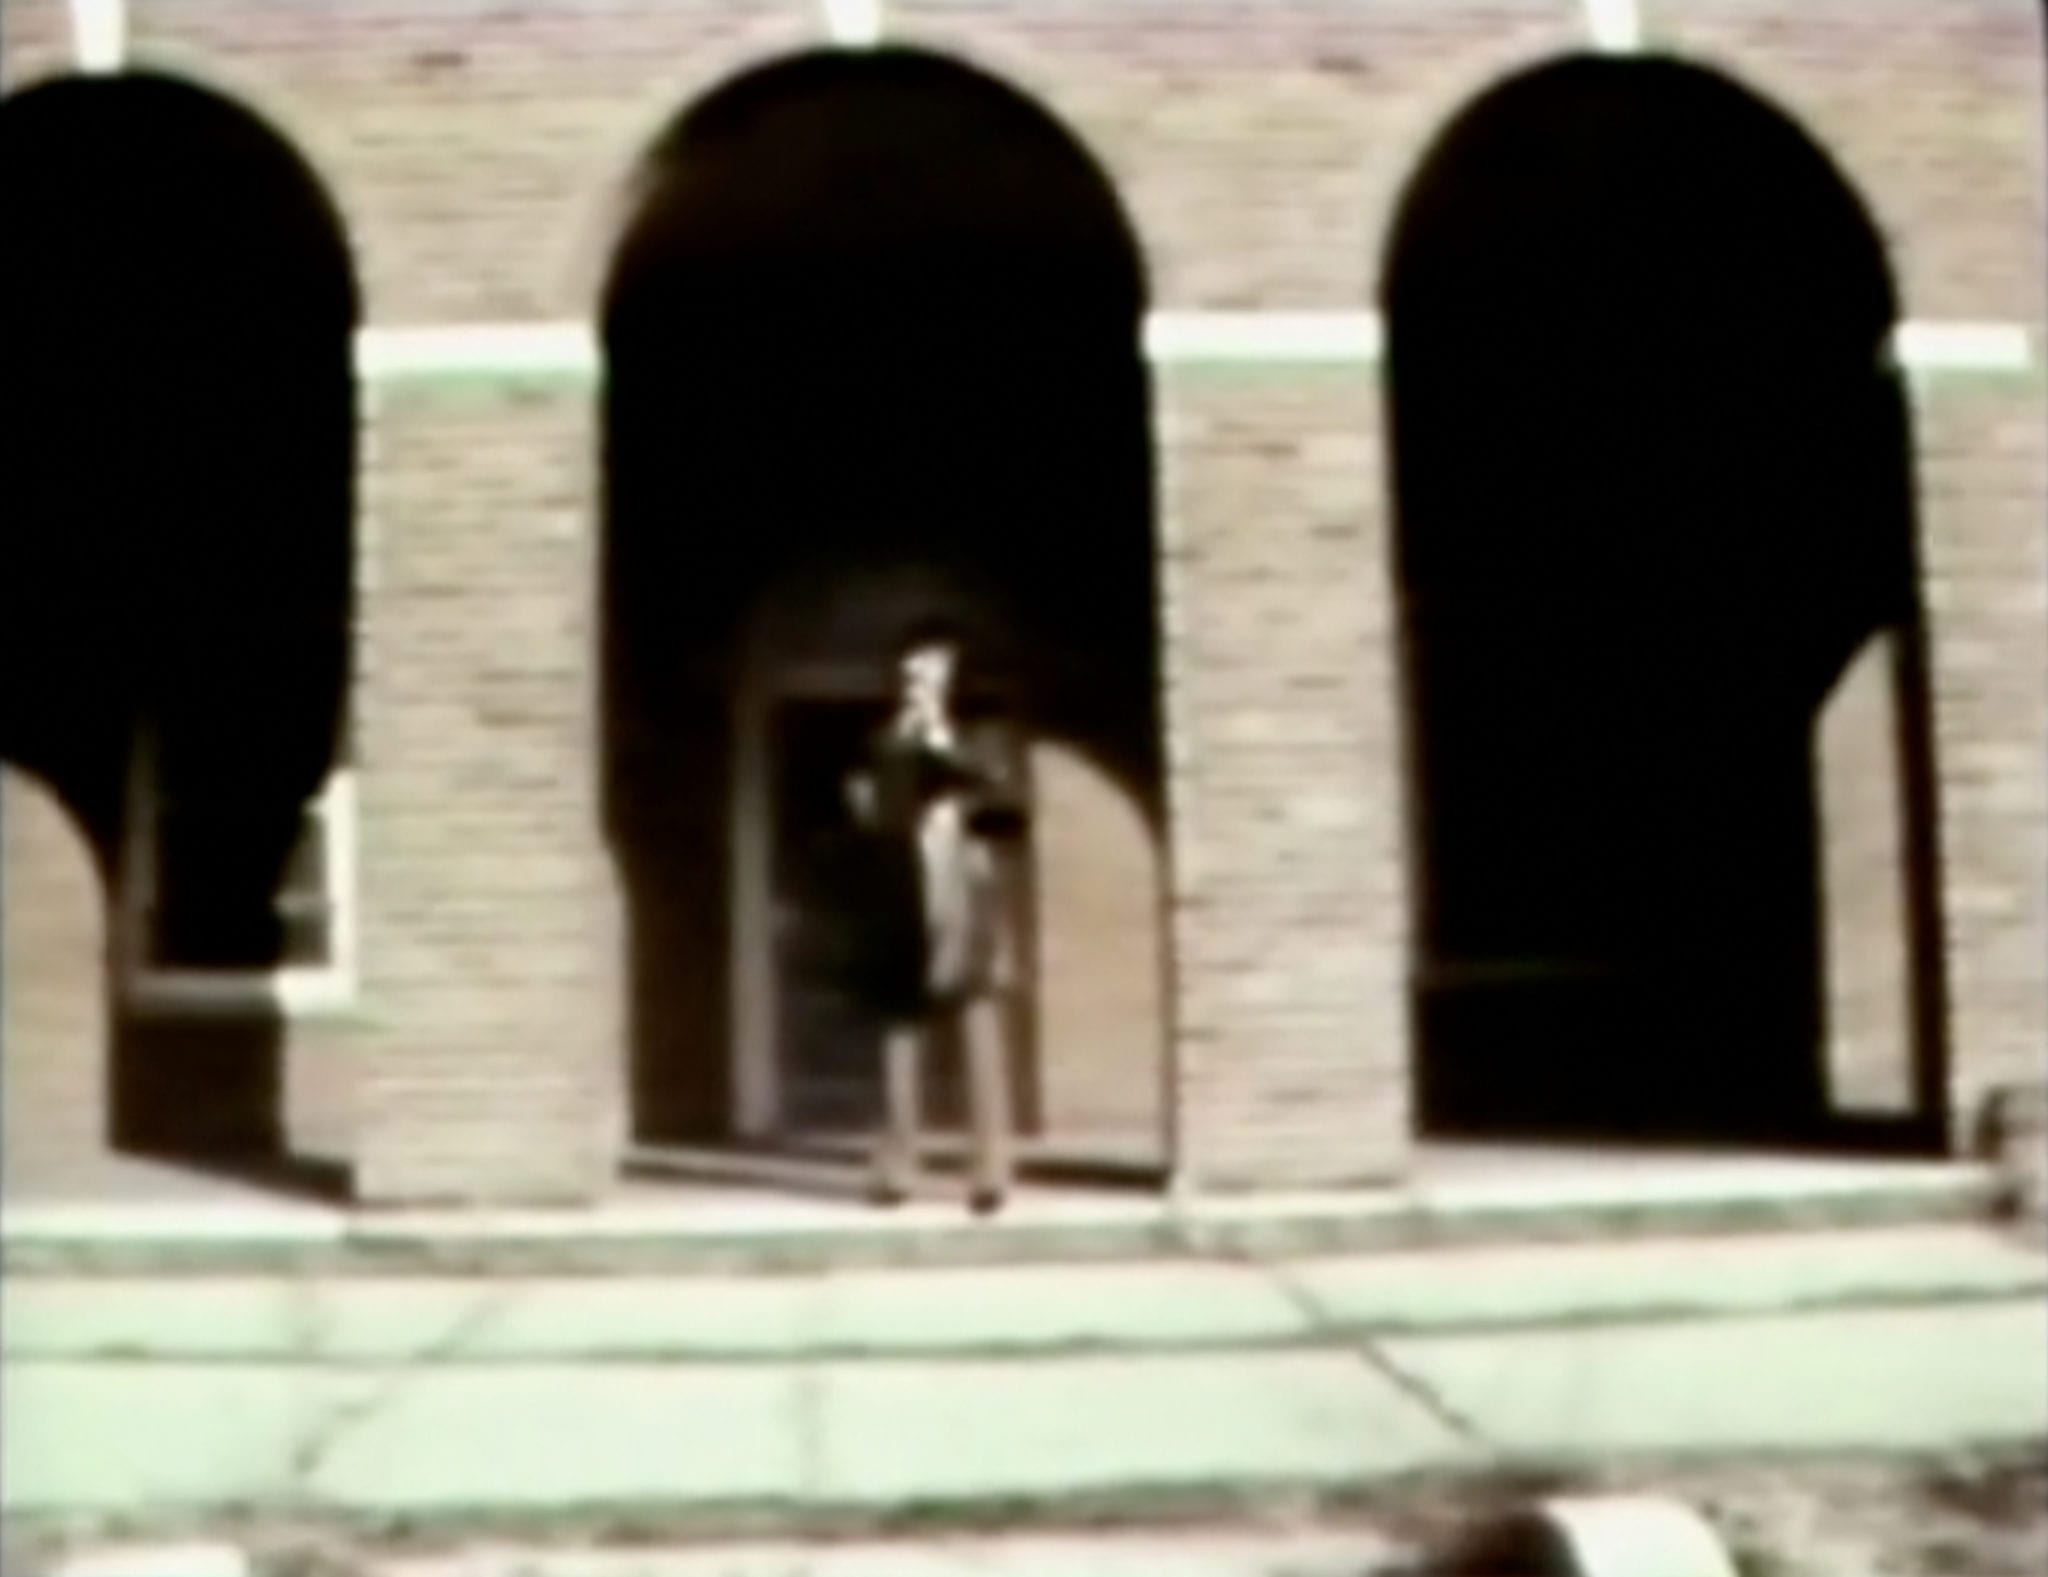 Geraldo River on the steps of Willowbrook speaking to the camera with a microphone in hand